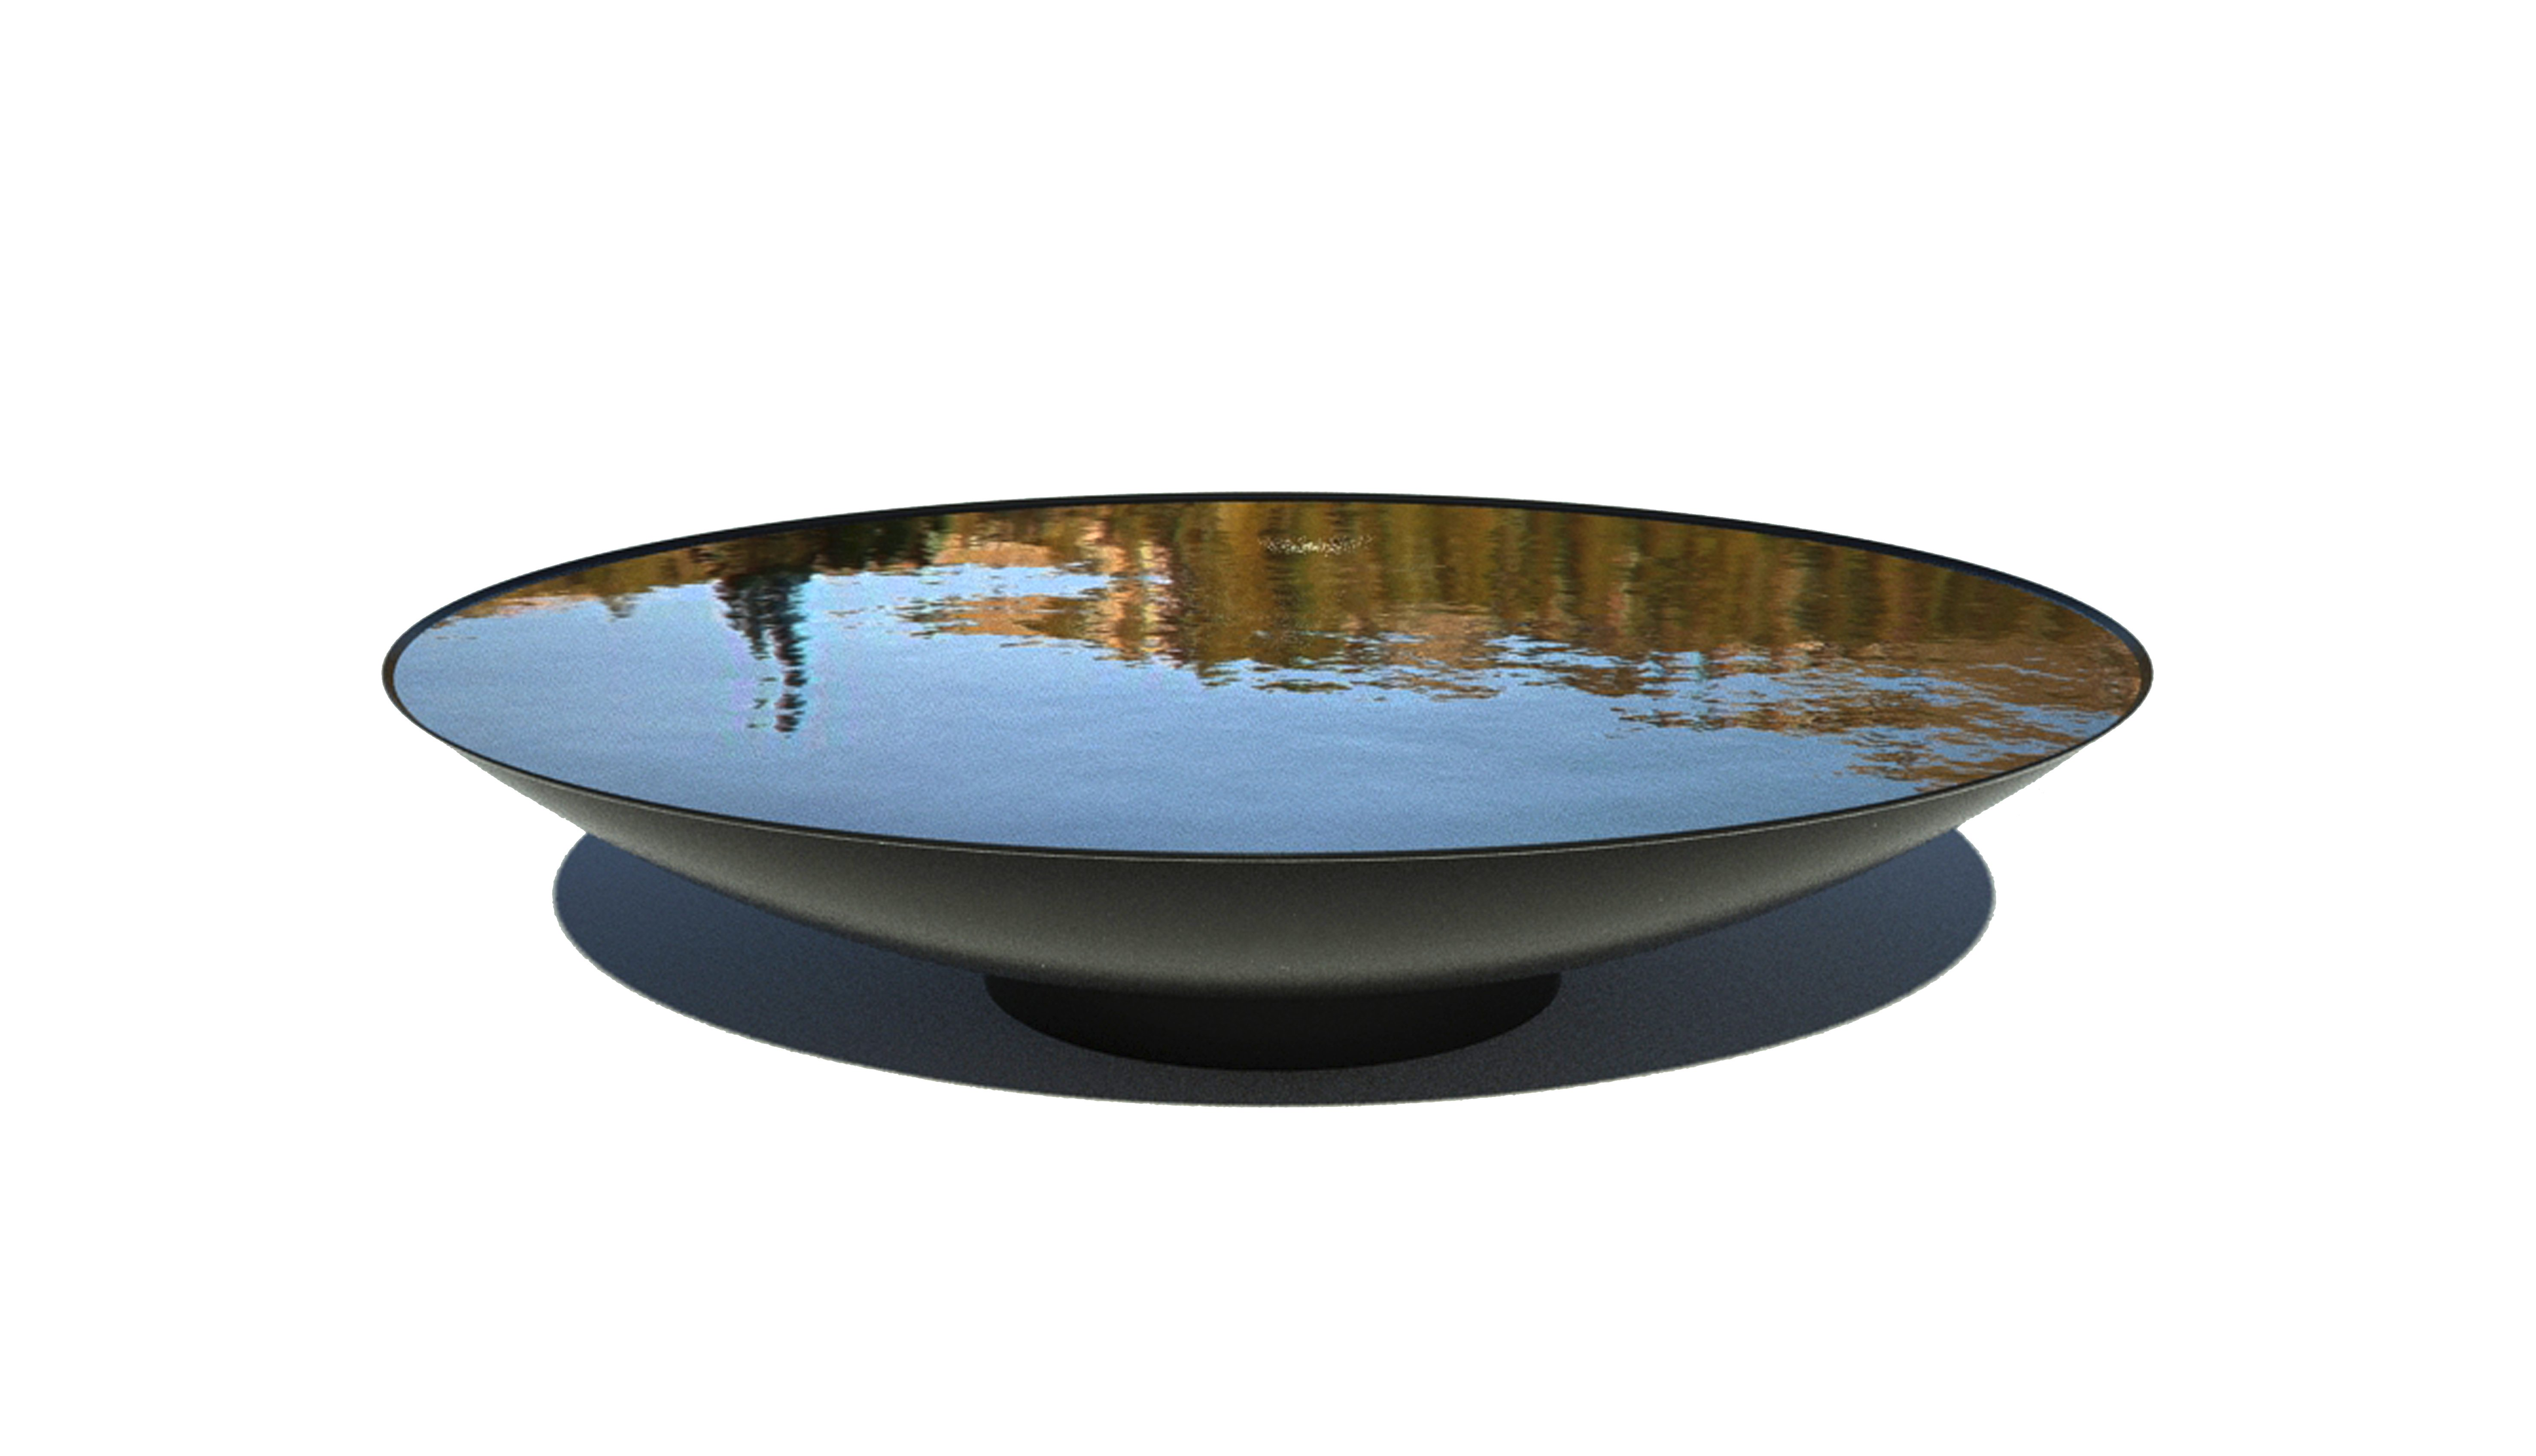 waterelement waterbowl + coating